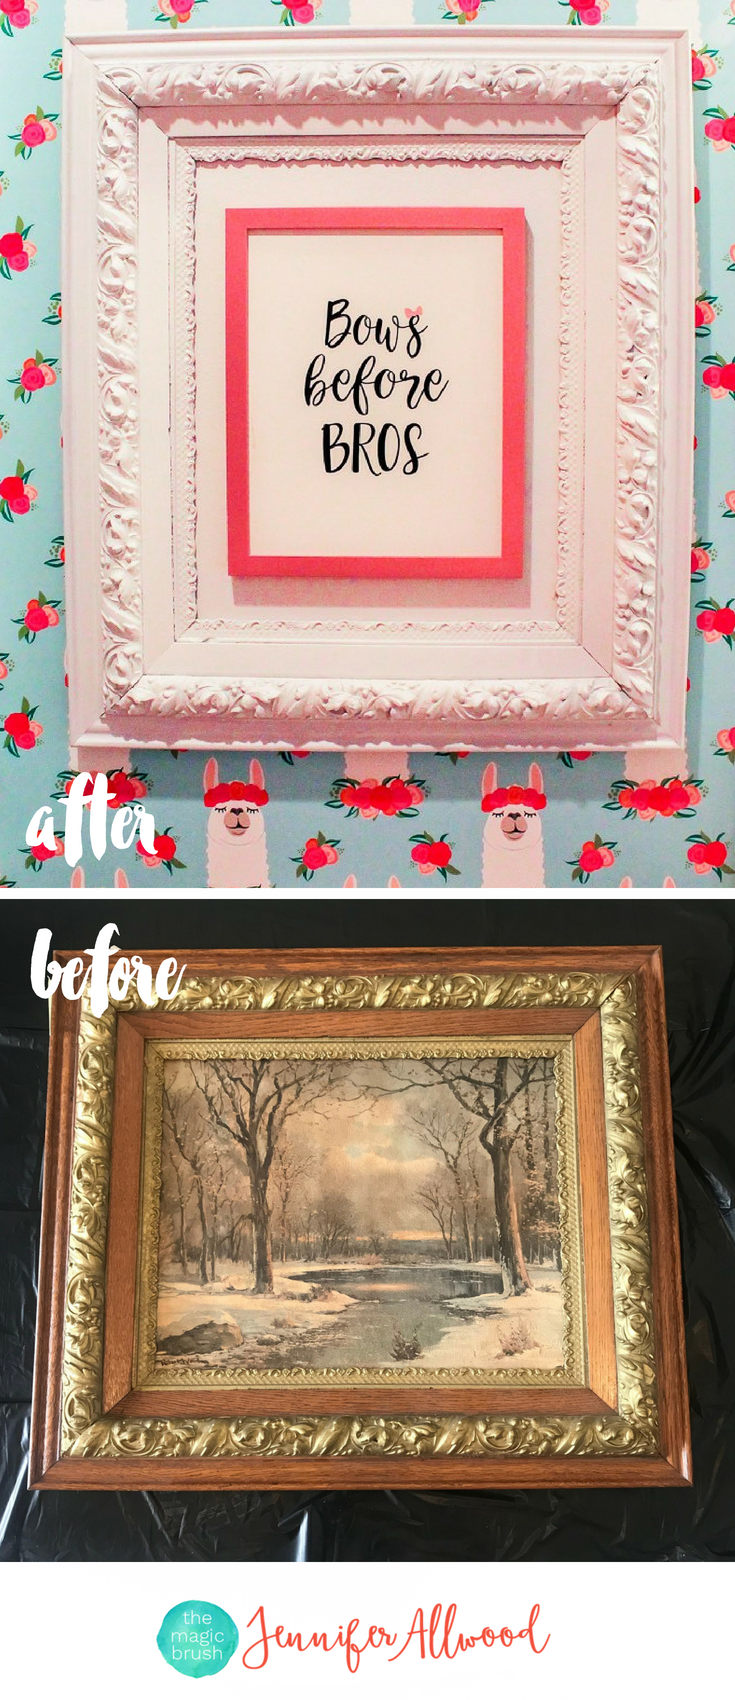 Thrift Store Frame Makeover - How to Frame Small Art Prints to be Beautiful and Oversized by Jennifer Allwood - Repurposed Picture Frame Ideas #diy #repurposed #walldecor #girlart #upcycled #hobbylobbyfinds Girls Bathroom Art -